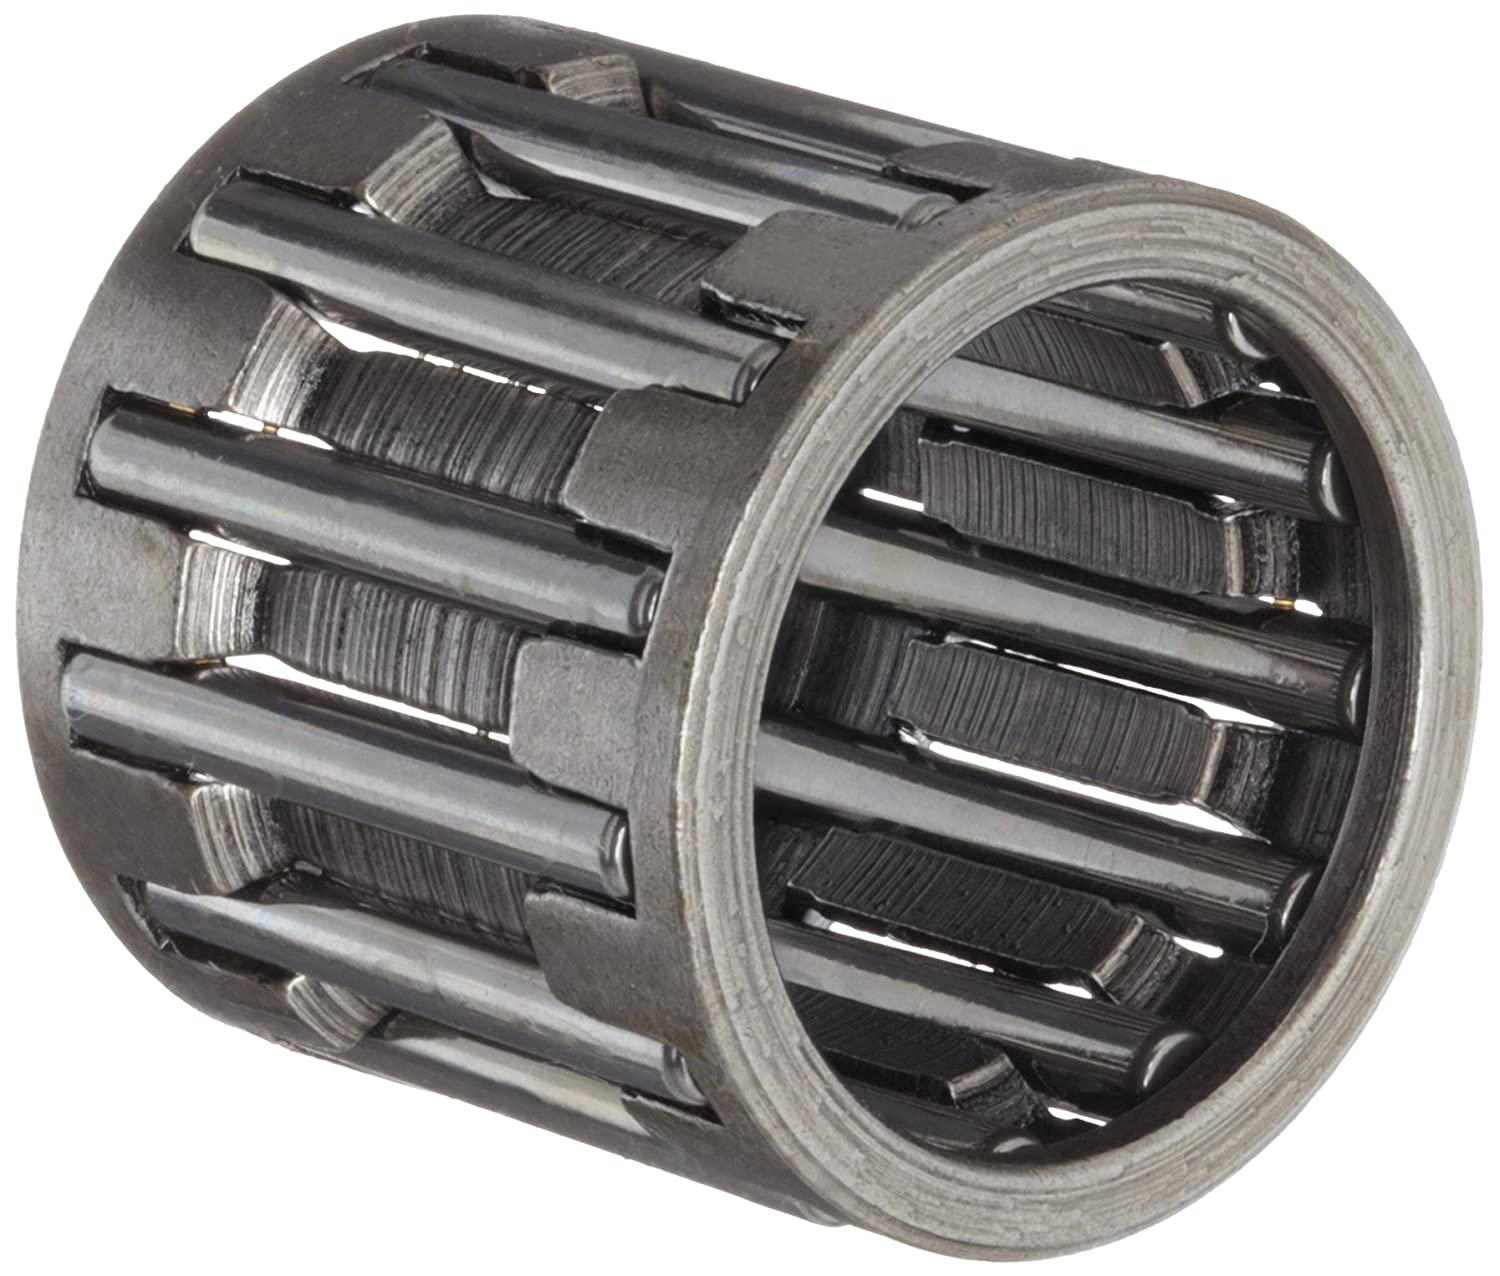 KT182322 Cage K 18x23x22 Needle Bearings 18mm//23mm//22mm